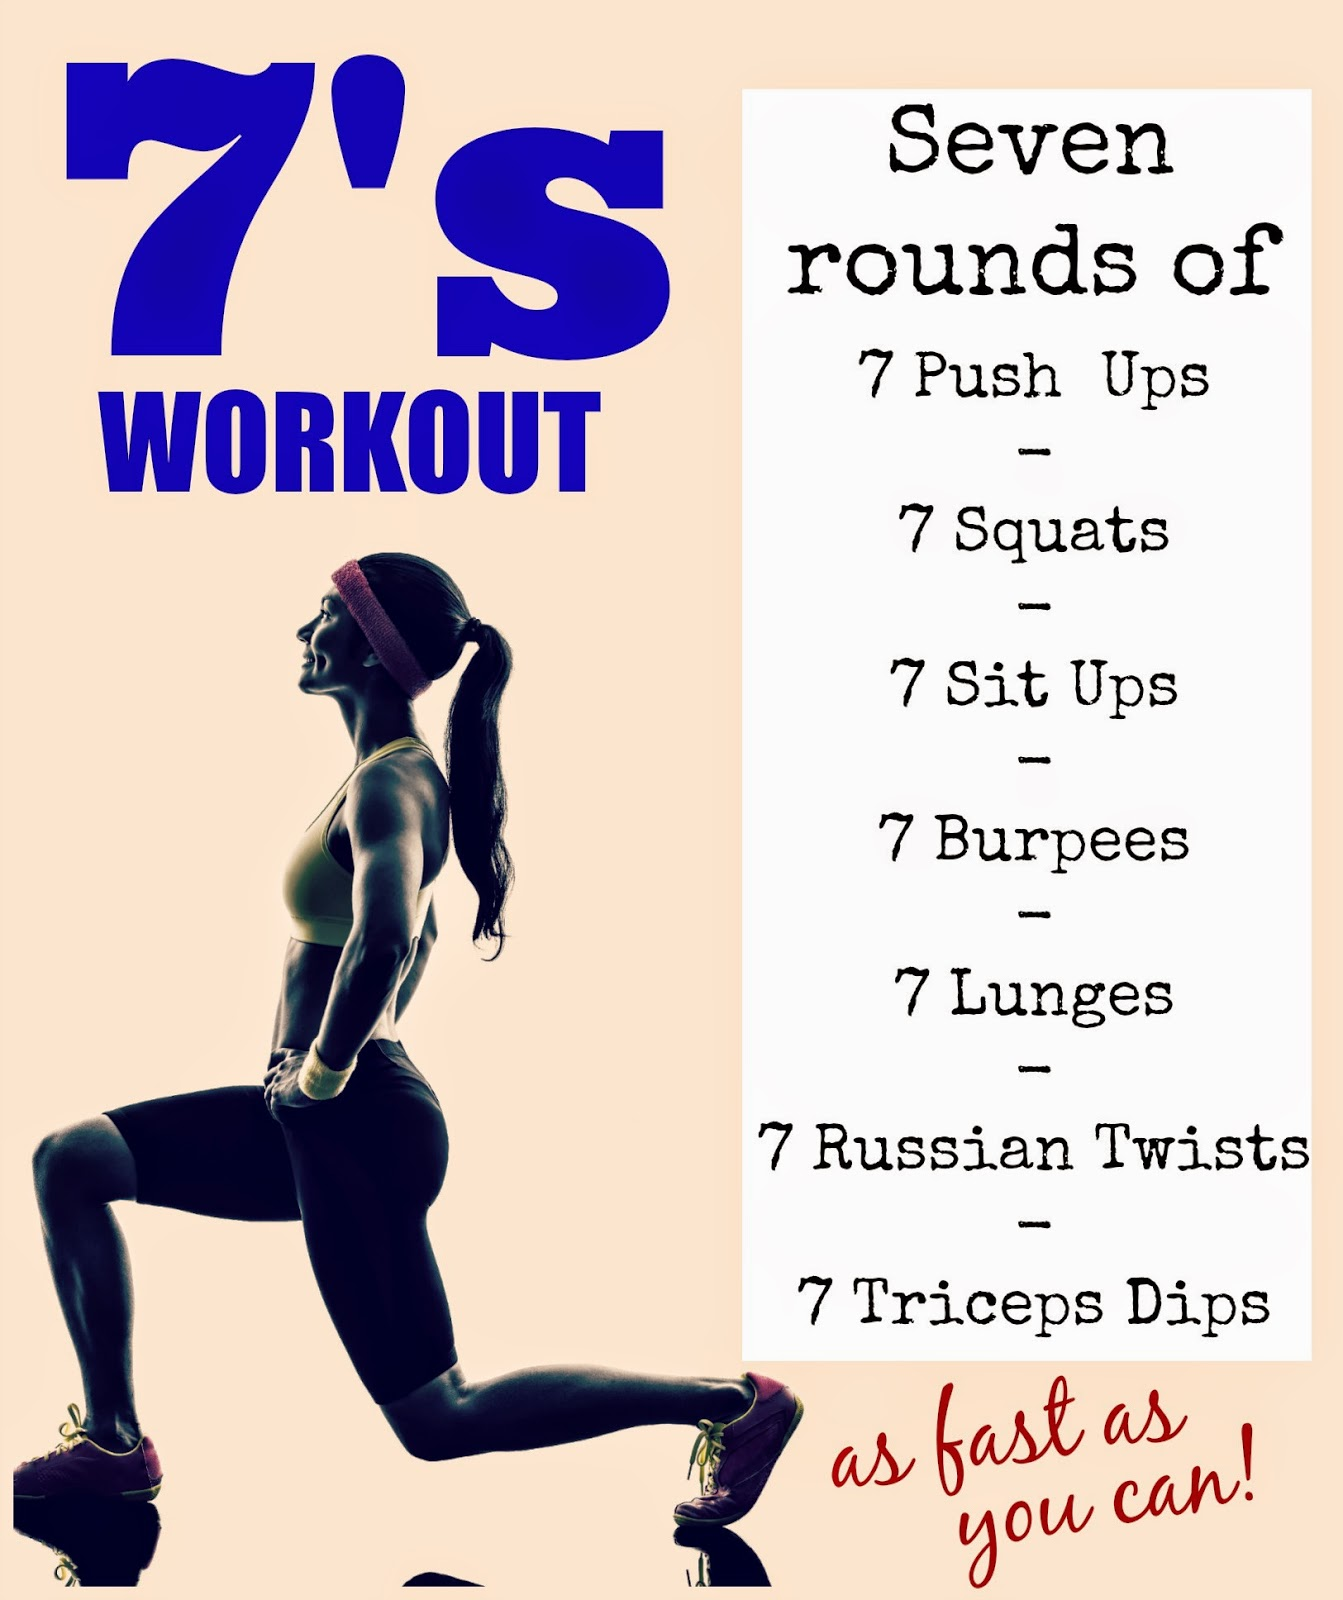 Sevens Workout – Amazing Quick At-Home Workout | Tone and